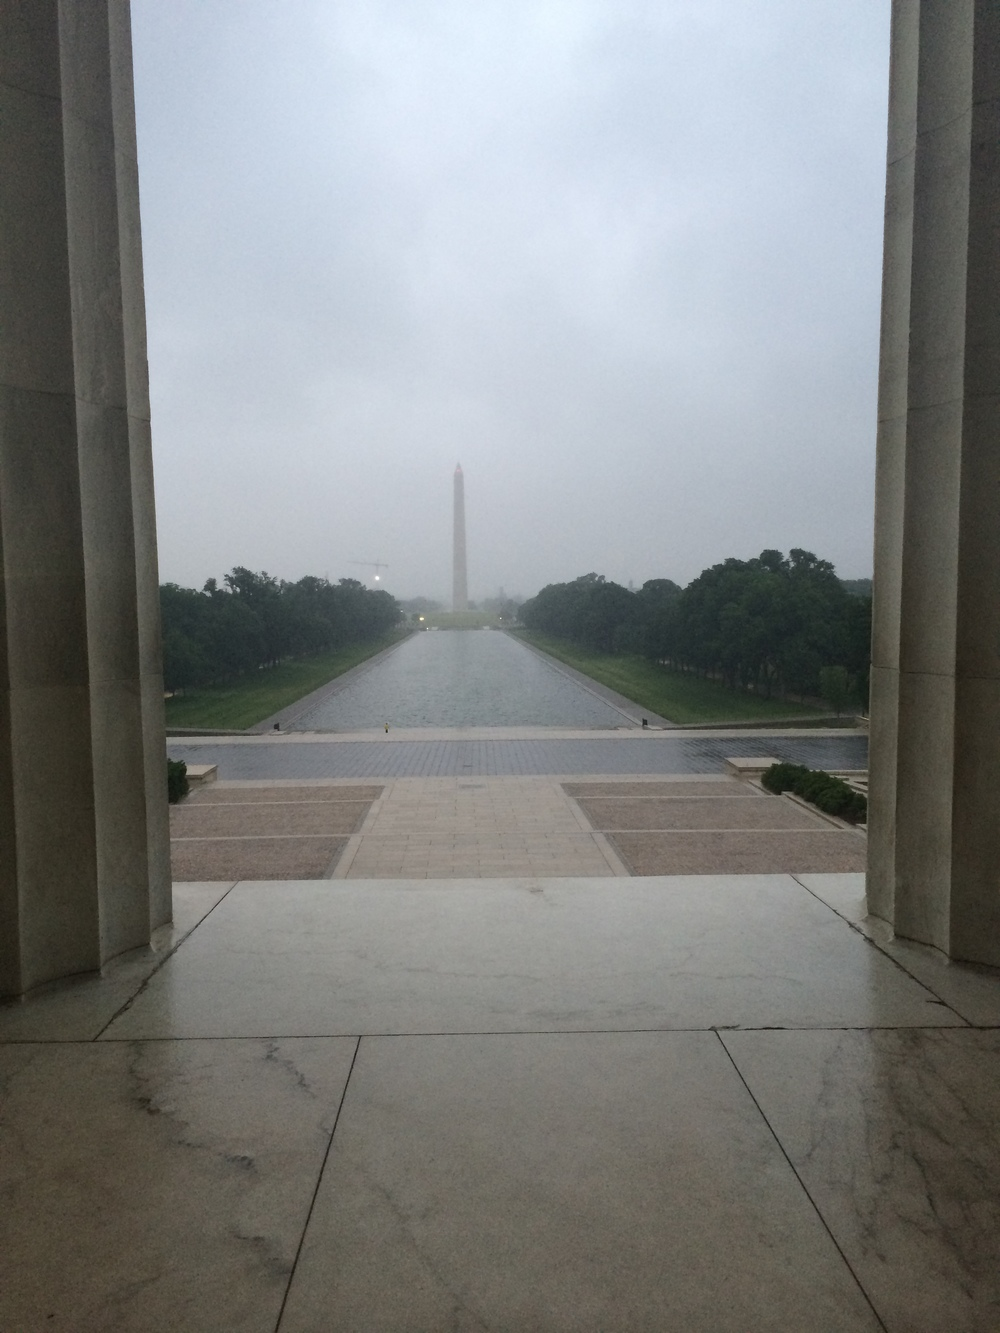 """A photo near the spot where Martin Luther King Jr. gave his """"I Have a Dream Speech"""""""